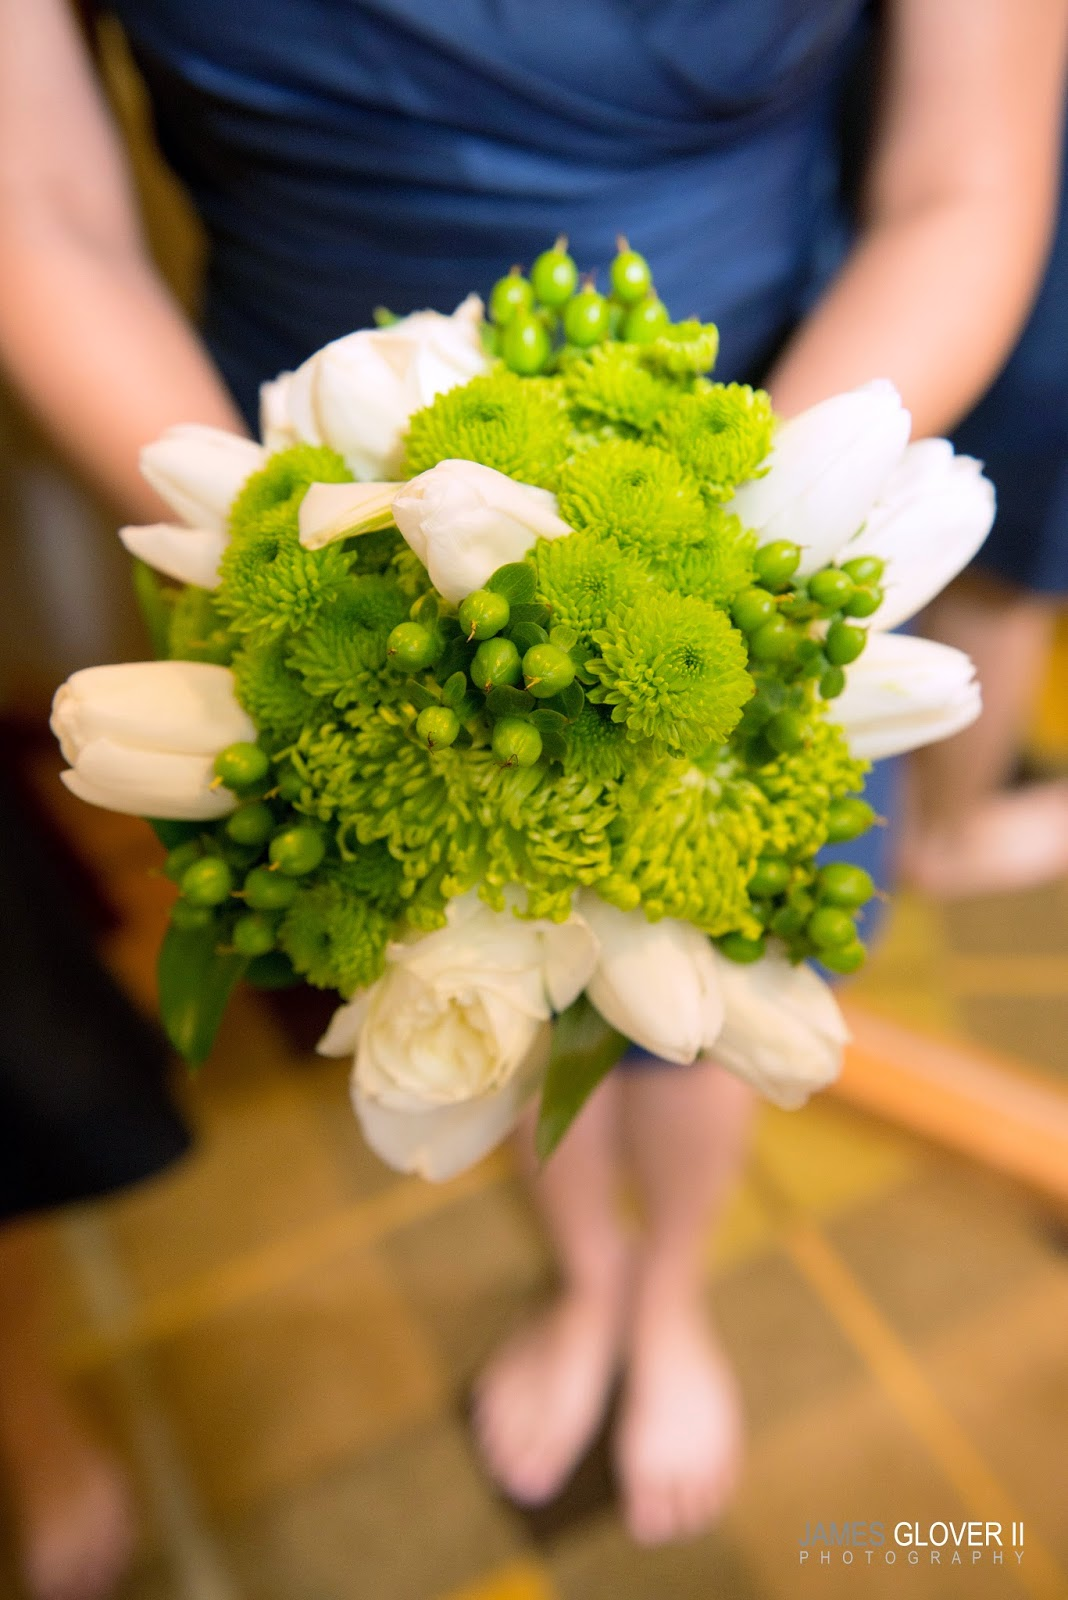 White & Green Bridesmaids Bouquet by B&B Designs | James Glover Photography | Take the Cake Events